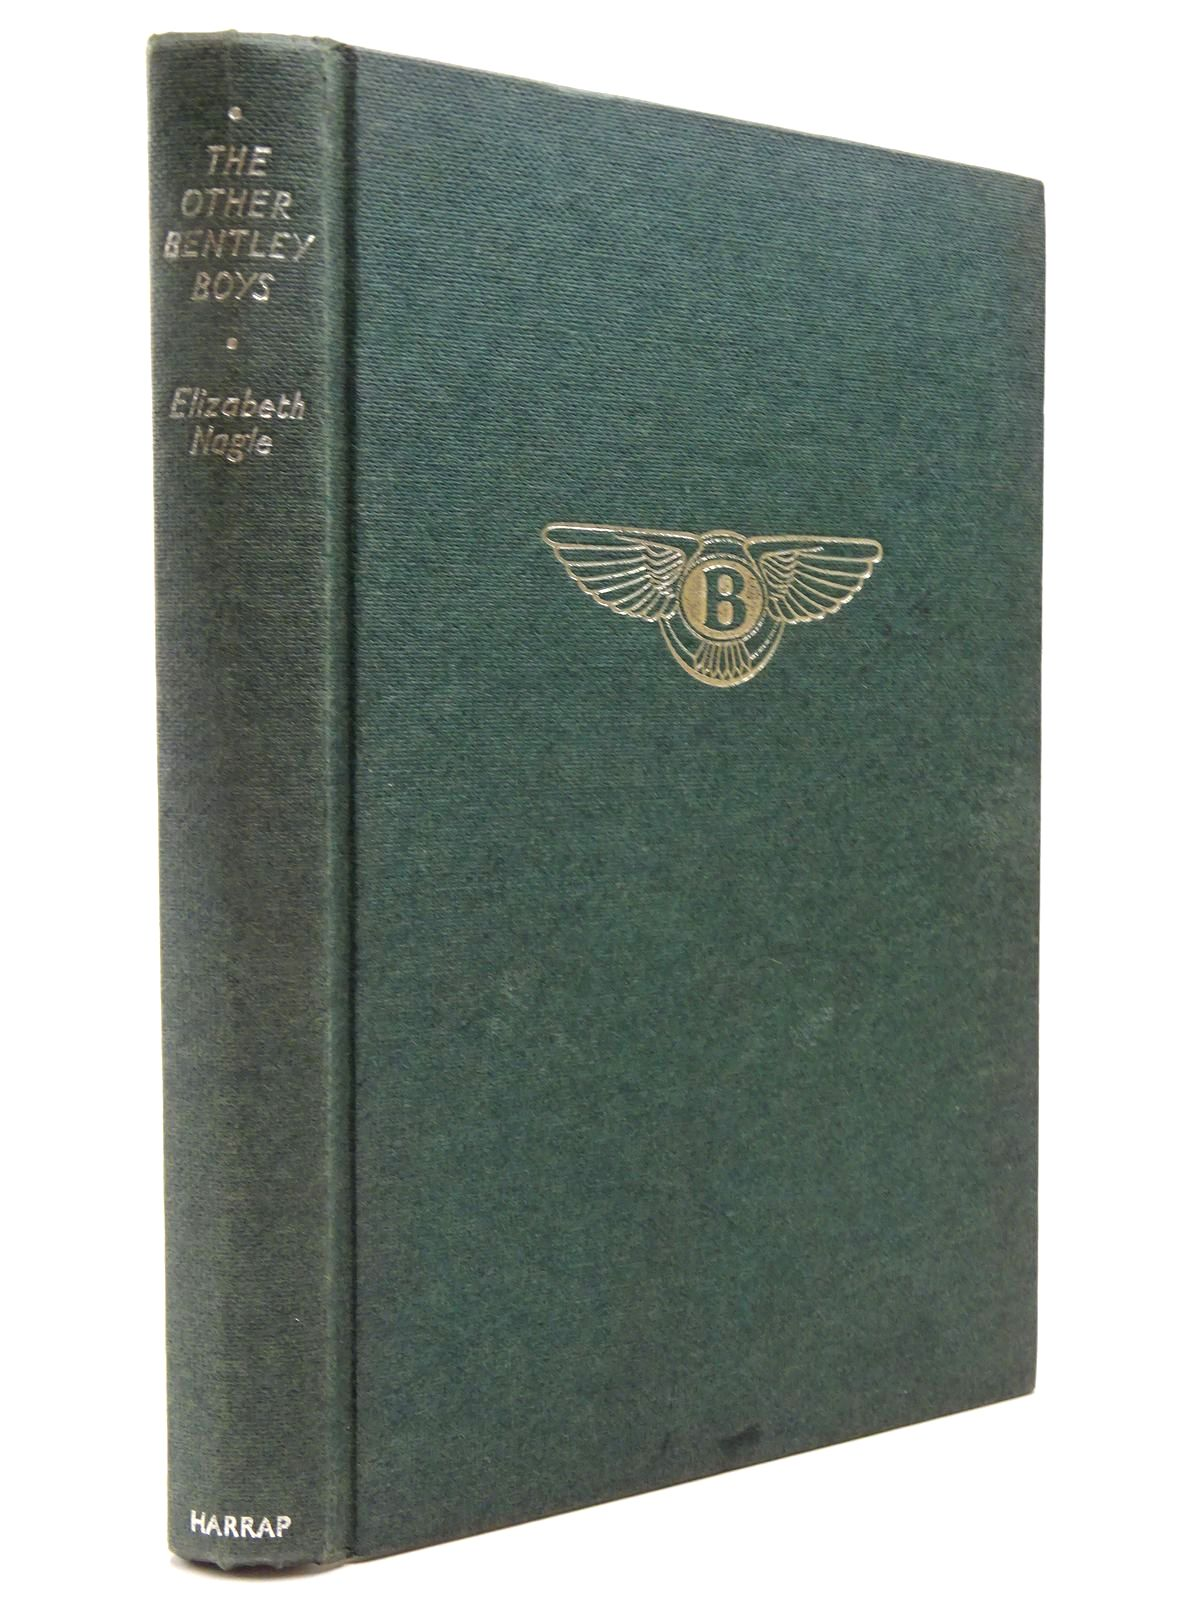 Photo of THE OTHER BENTLEY BOYS written by Nagle, Elizabeth published by George G. Harrap & Co. Ltd. (STOCK CODE: 2129744)  for sale by Stella & Rose's Books